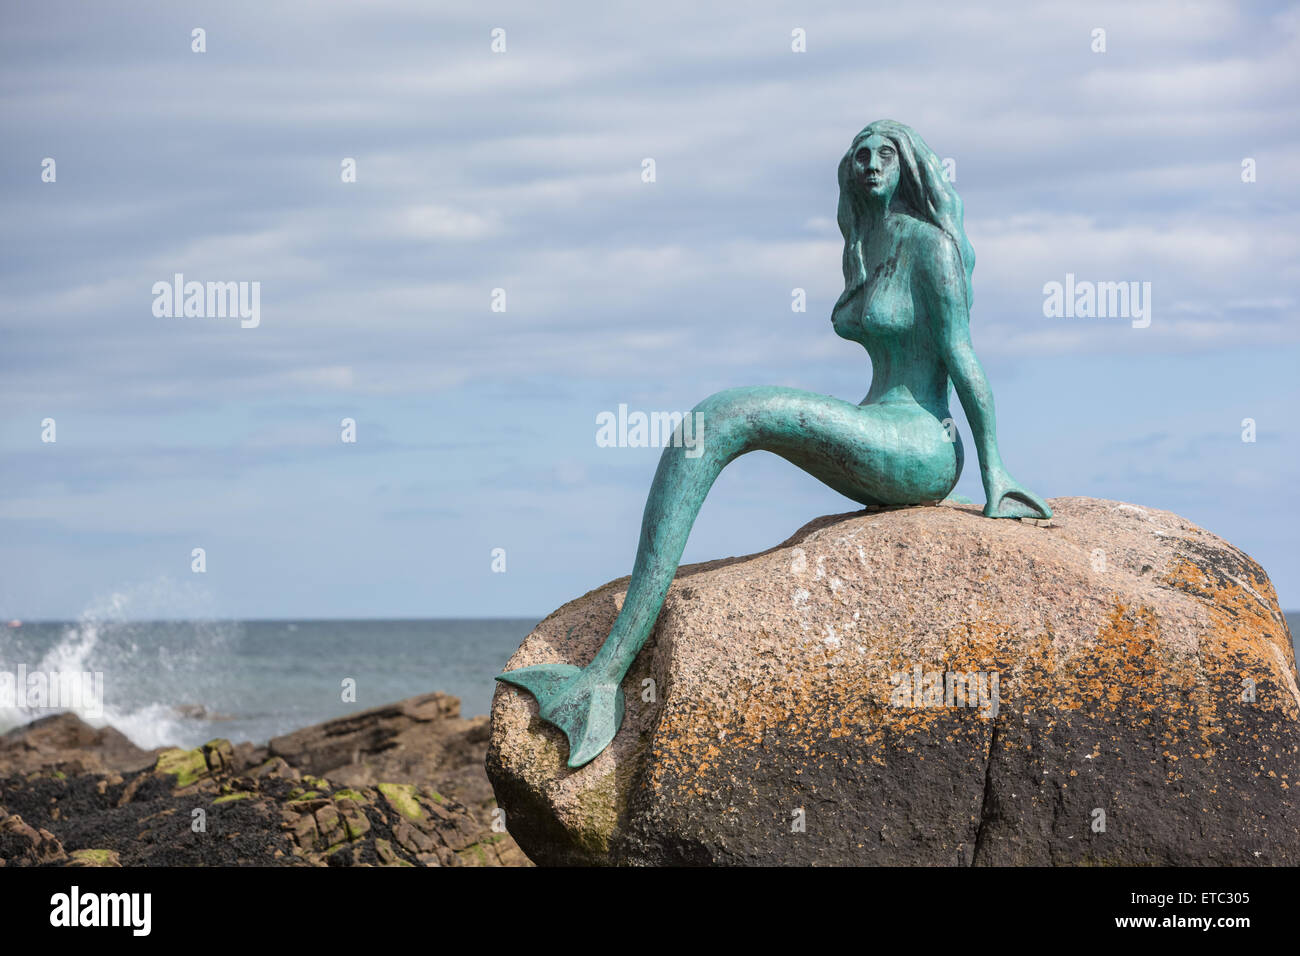 Mermaid On Rock Stock Photos & Mermaid On Rock Stock Images - Alamy